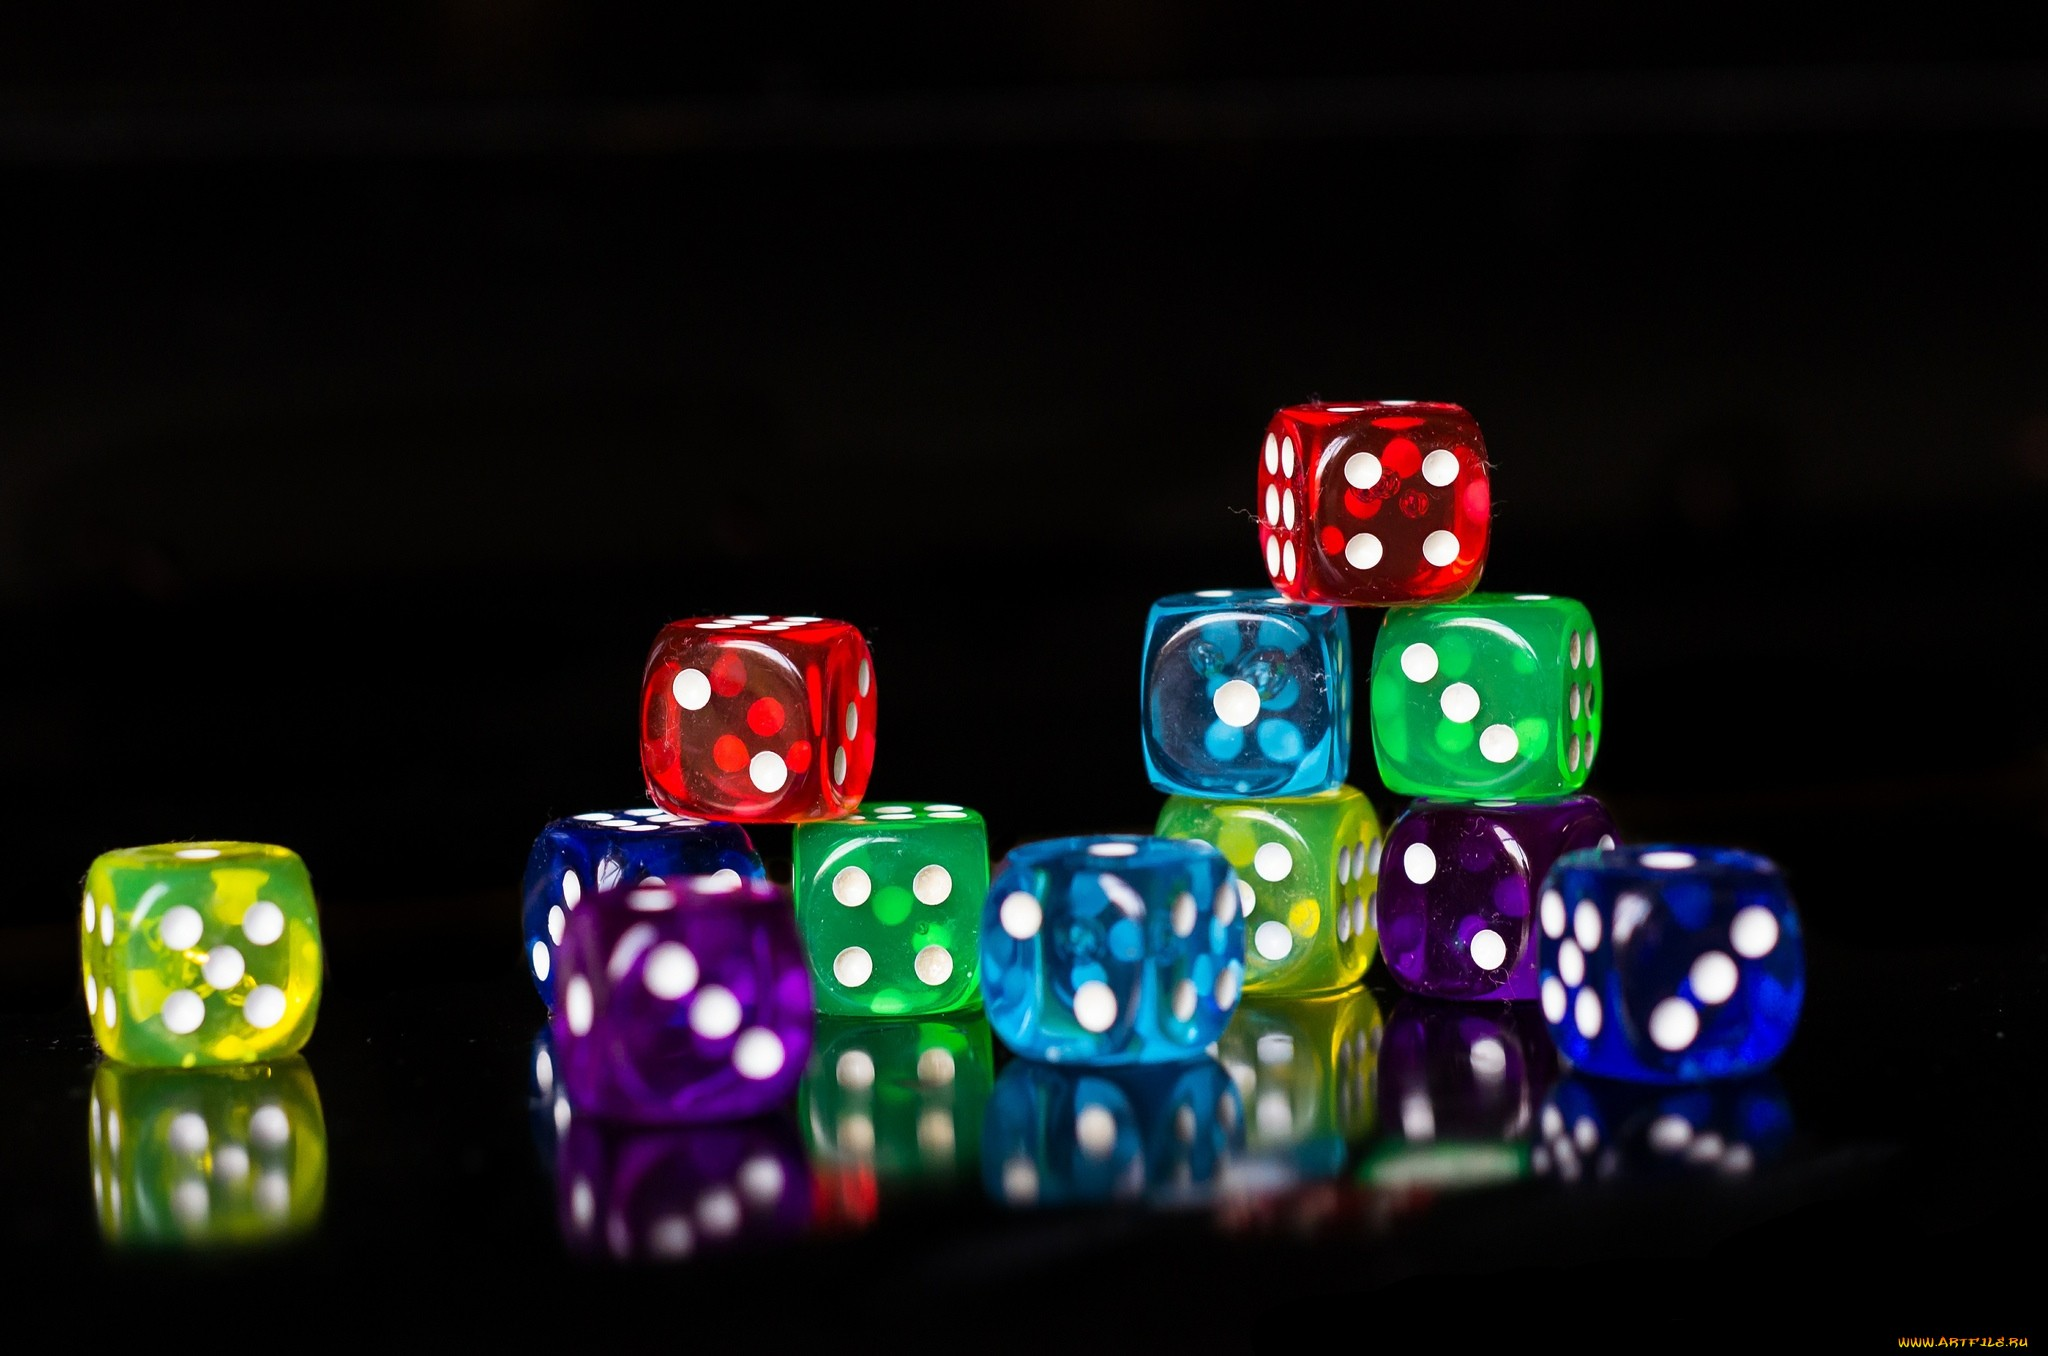 Dice backgrounds pictures images - Dice wallpaper ...